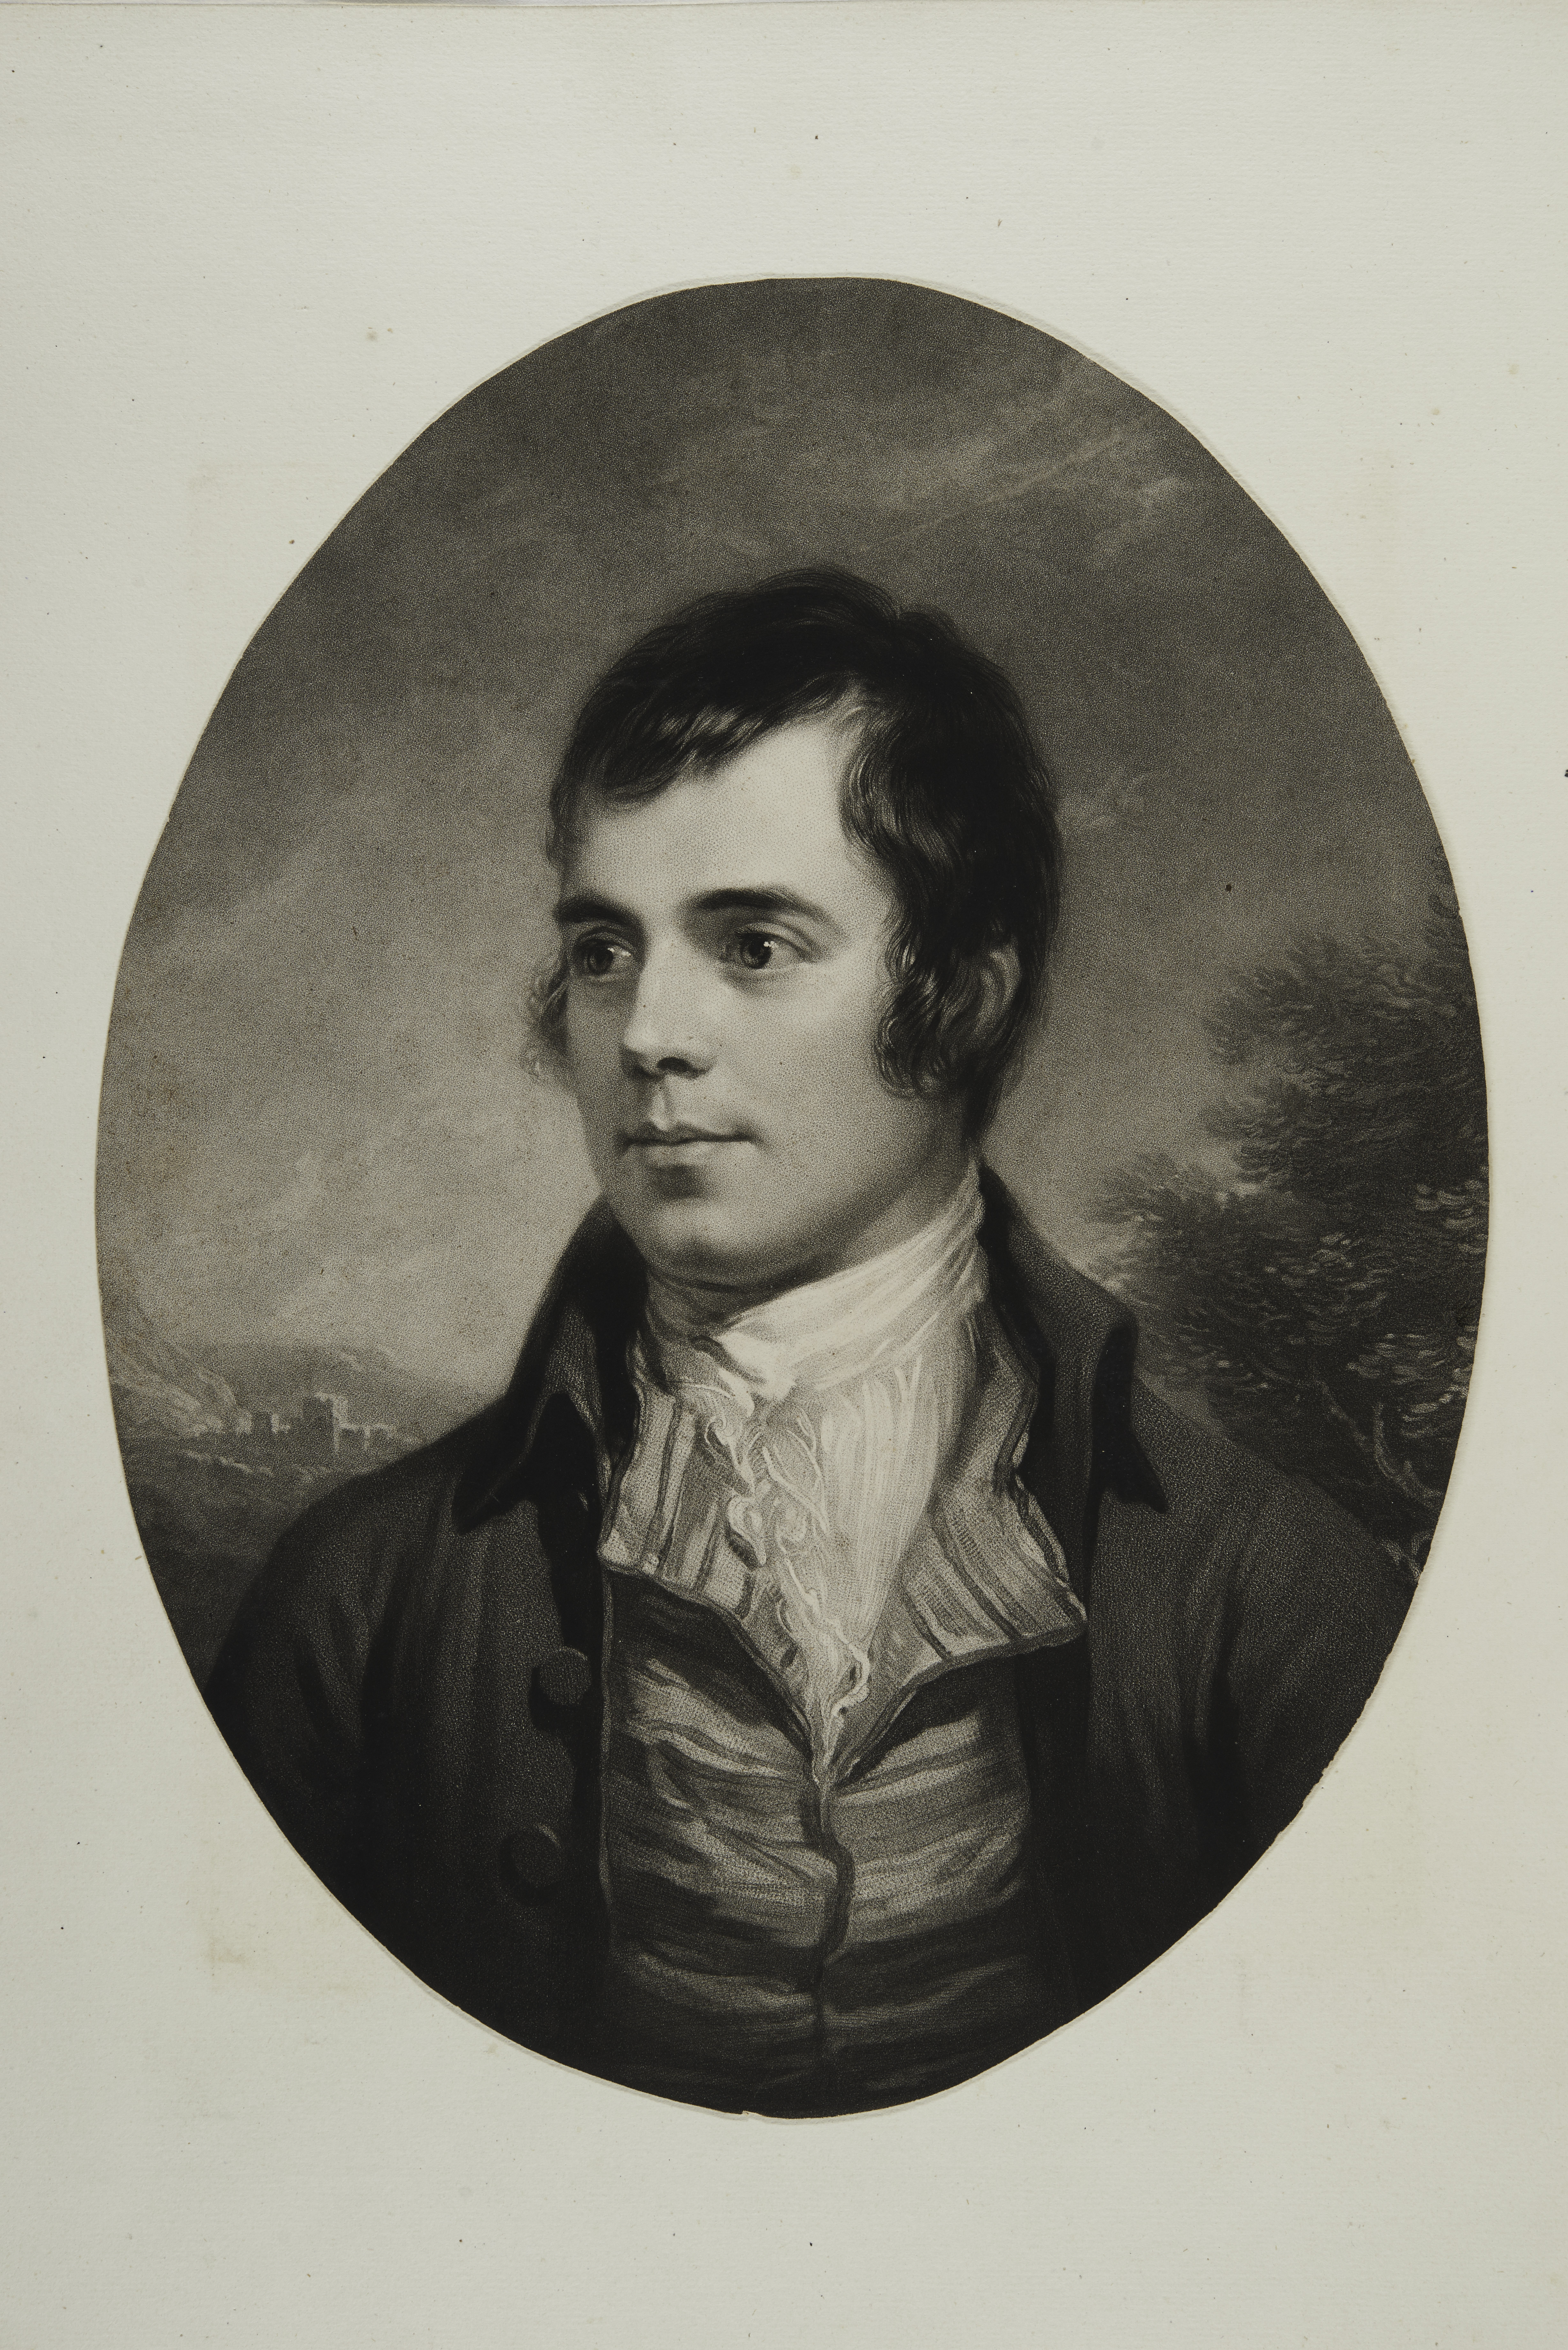 Robert Burns photo #3746, Robert Burns image